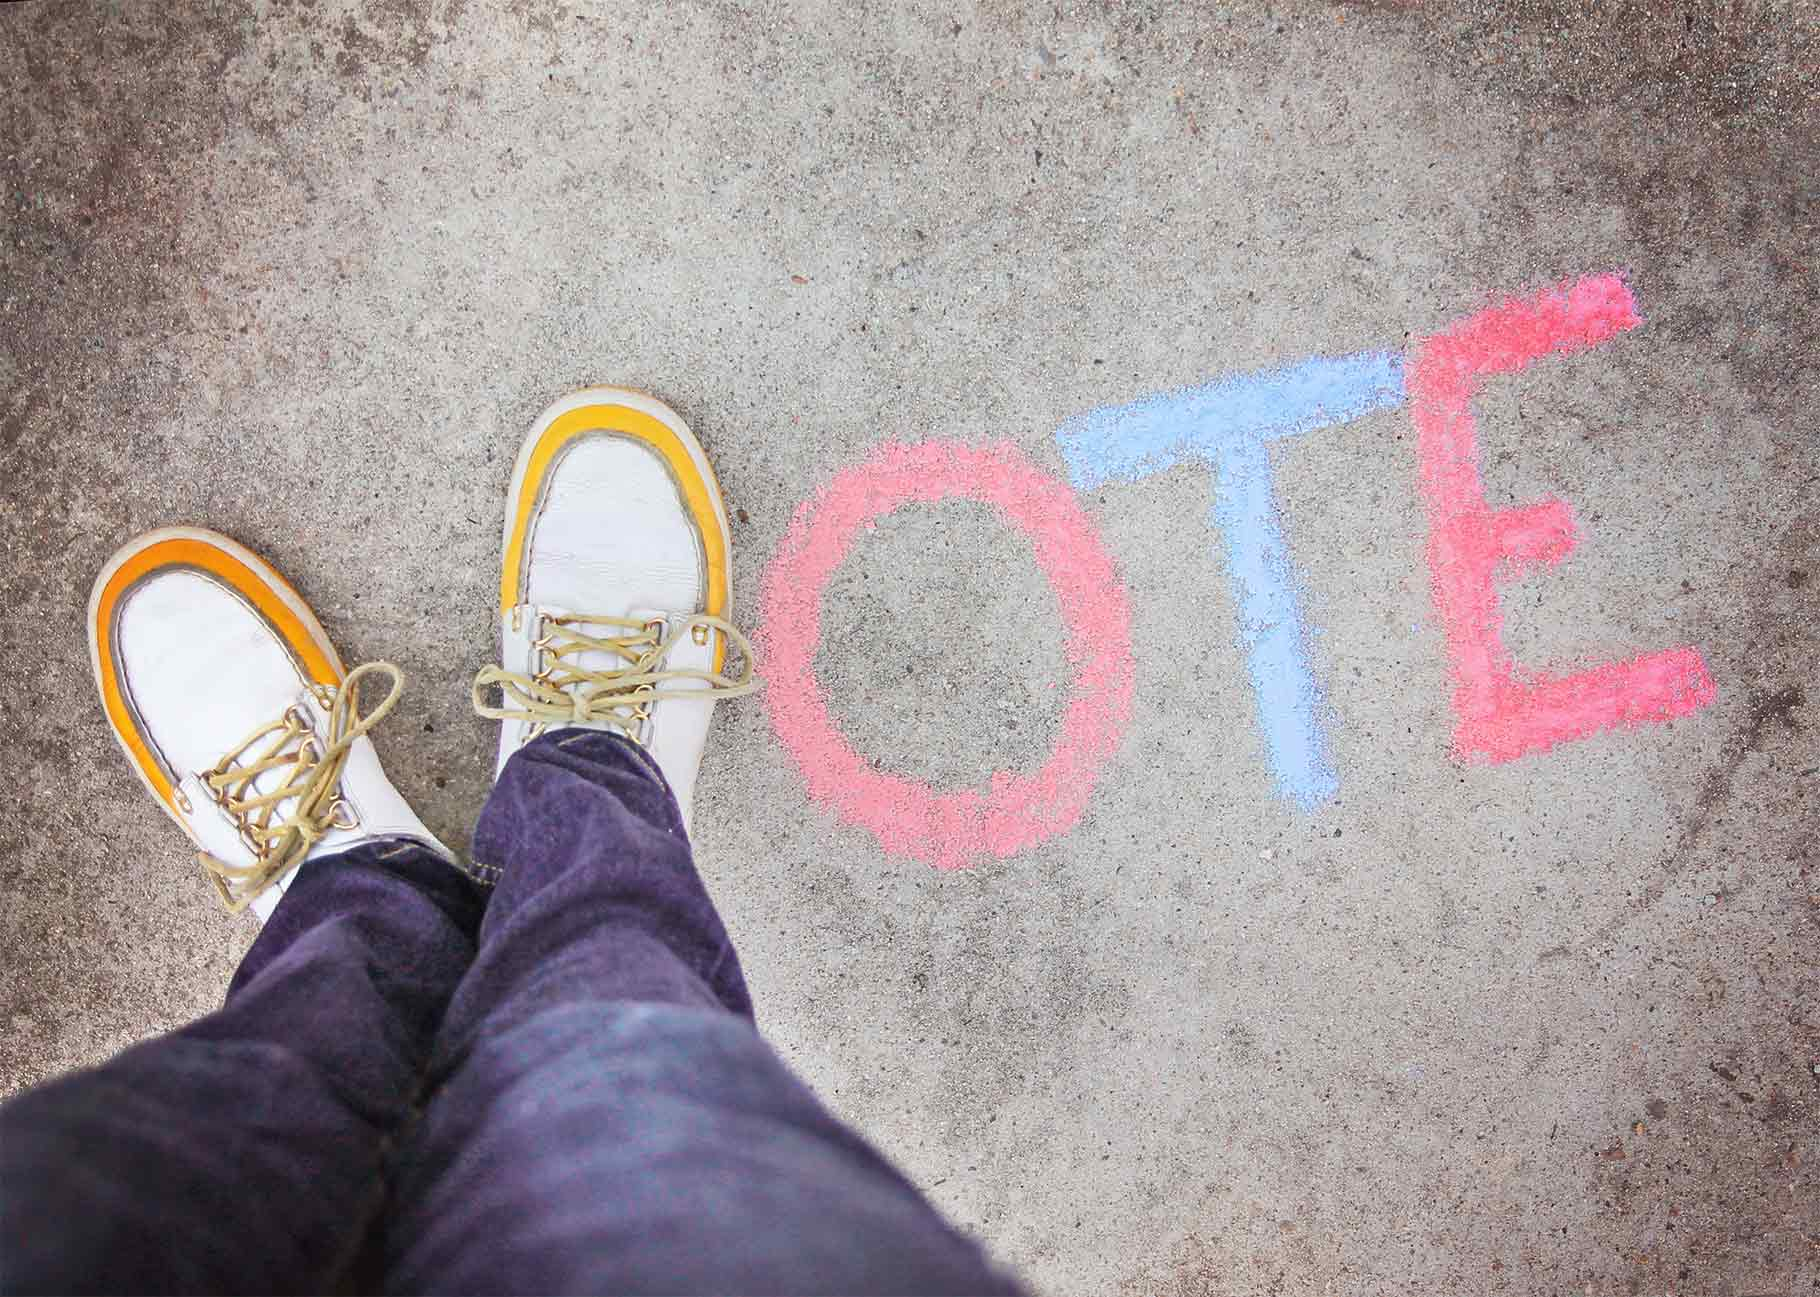 The word vote spelt by feet in the shape of a V and then chalk for OTE